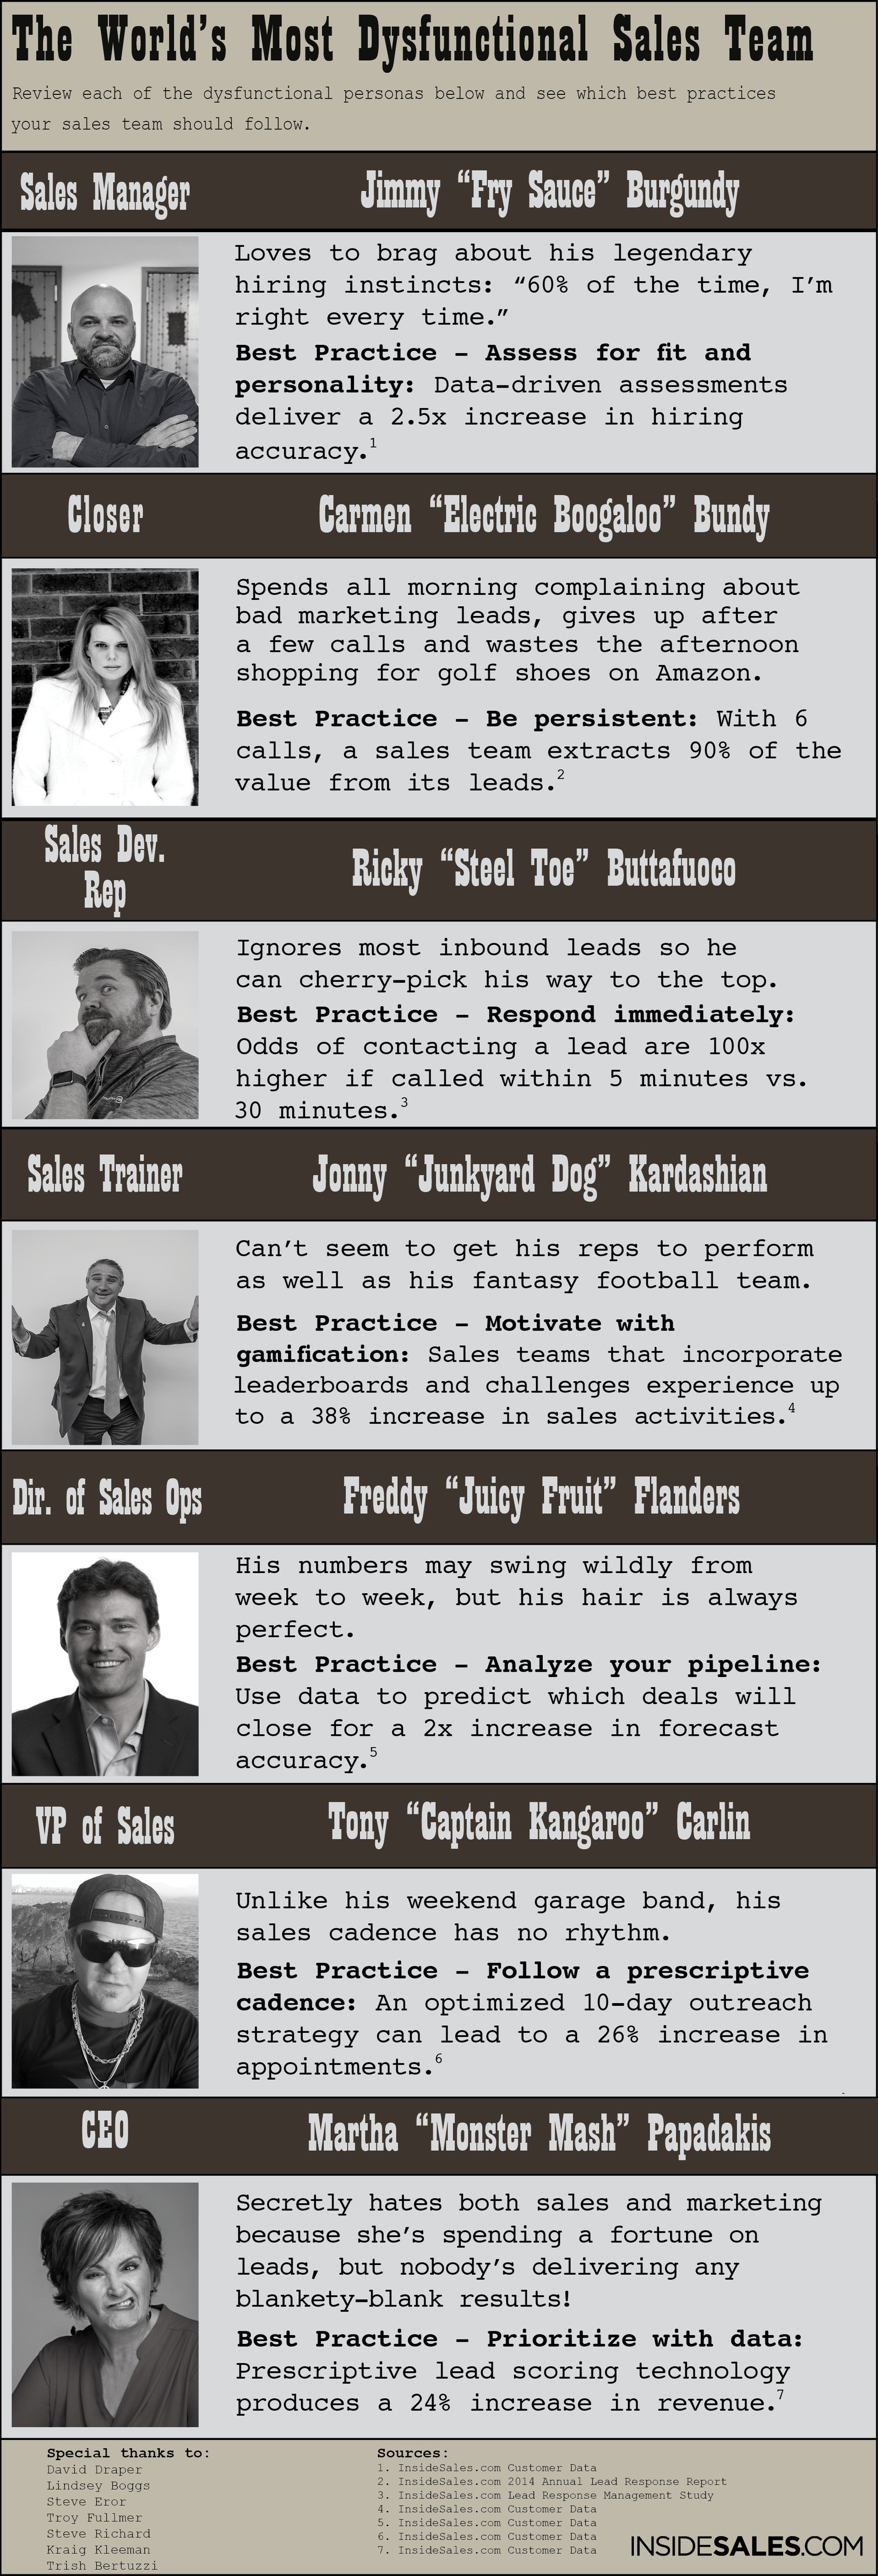 The World's Most Dysfunctional Sales Team